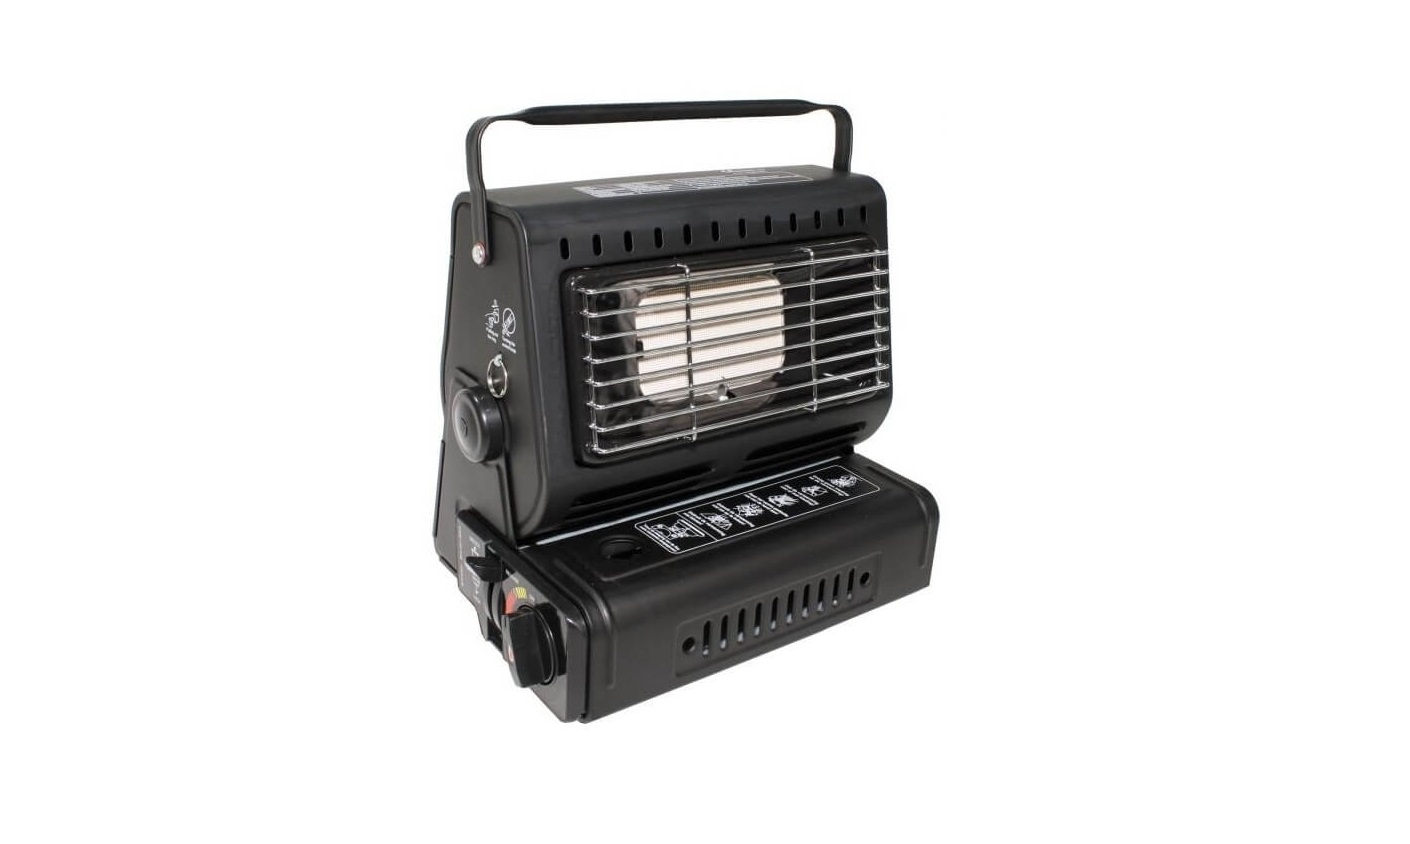 Bearcreeks Portable Gas Heater de luxe